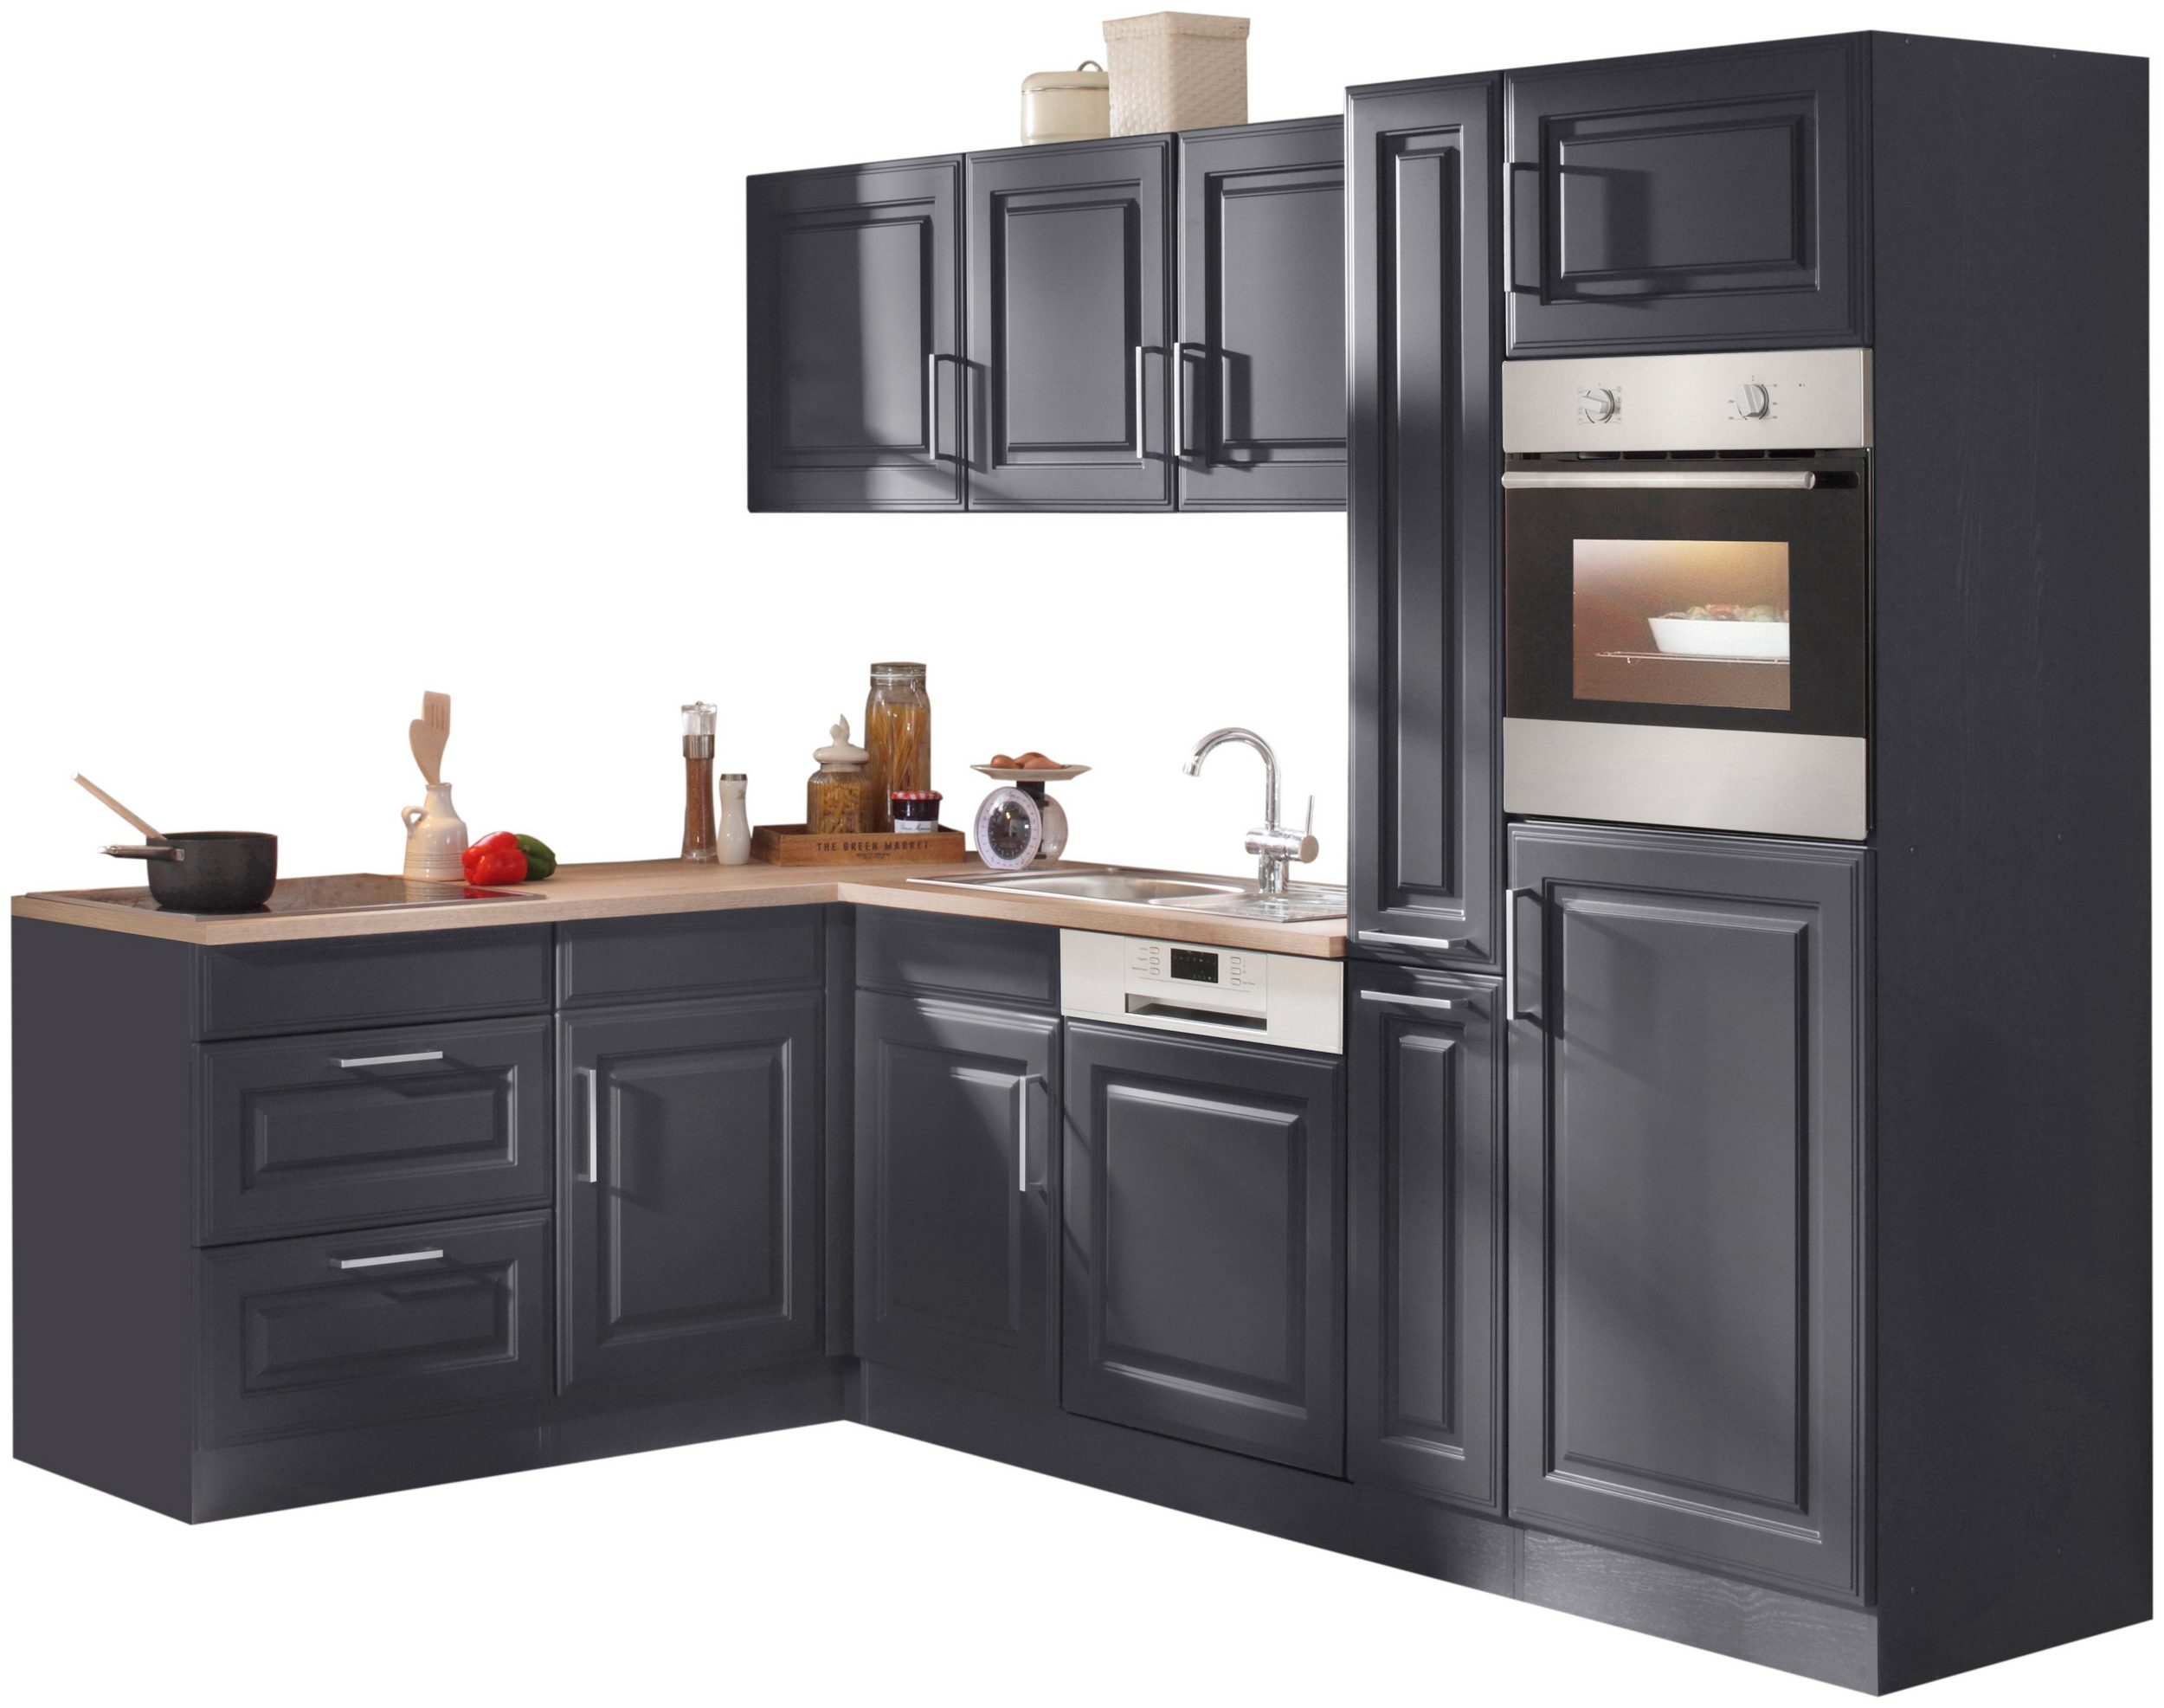 4777276774 Brimnes Kitchen Cabinets HELD khmer in phnom penh cambodia